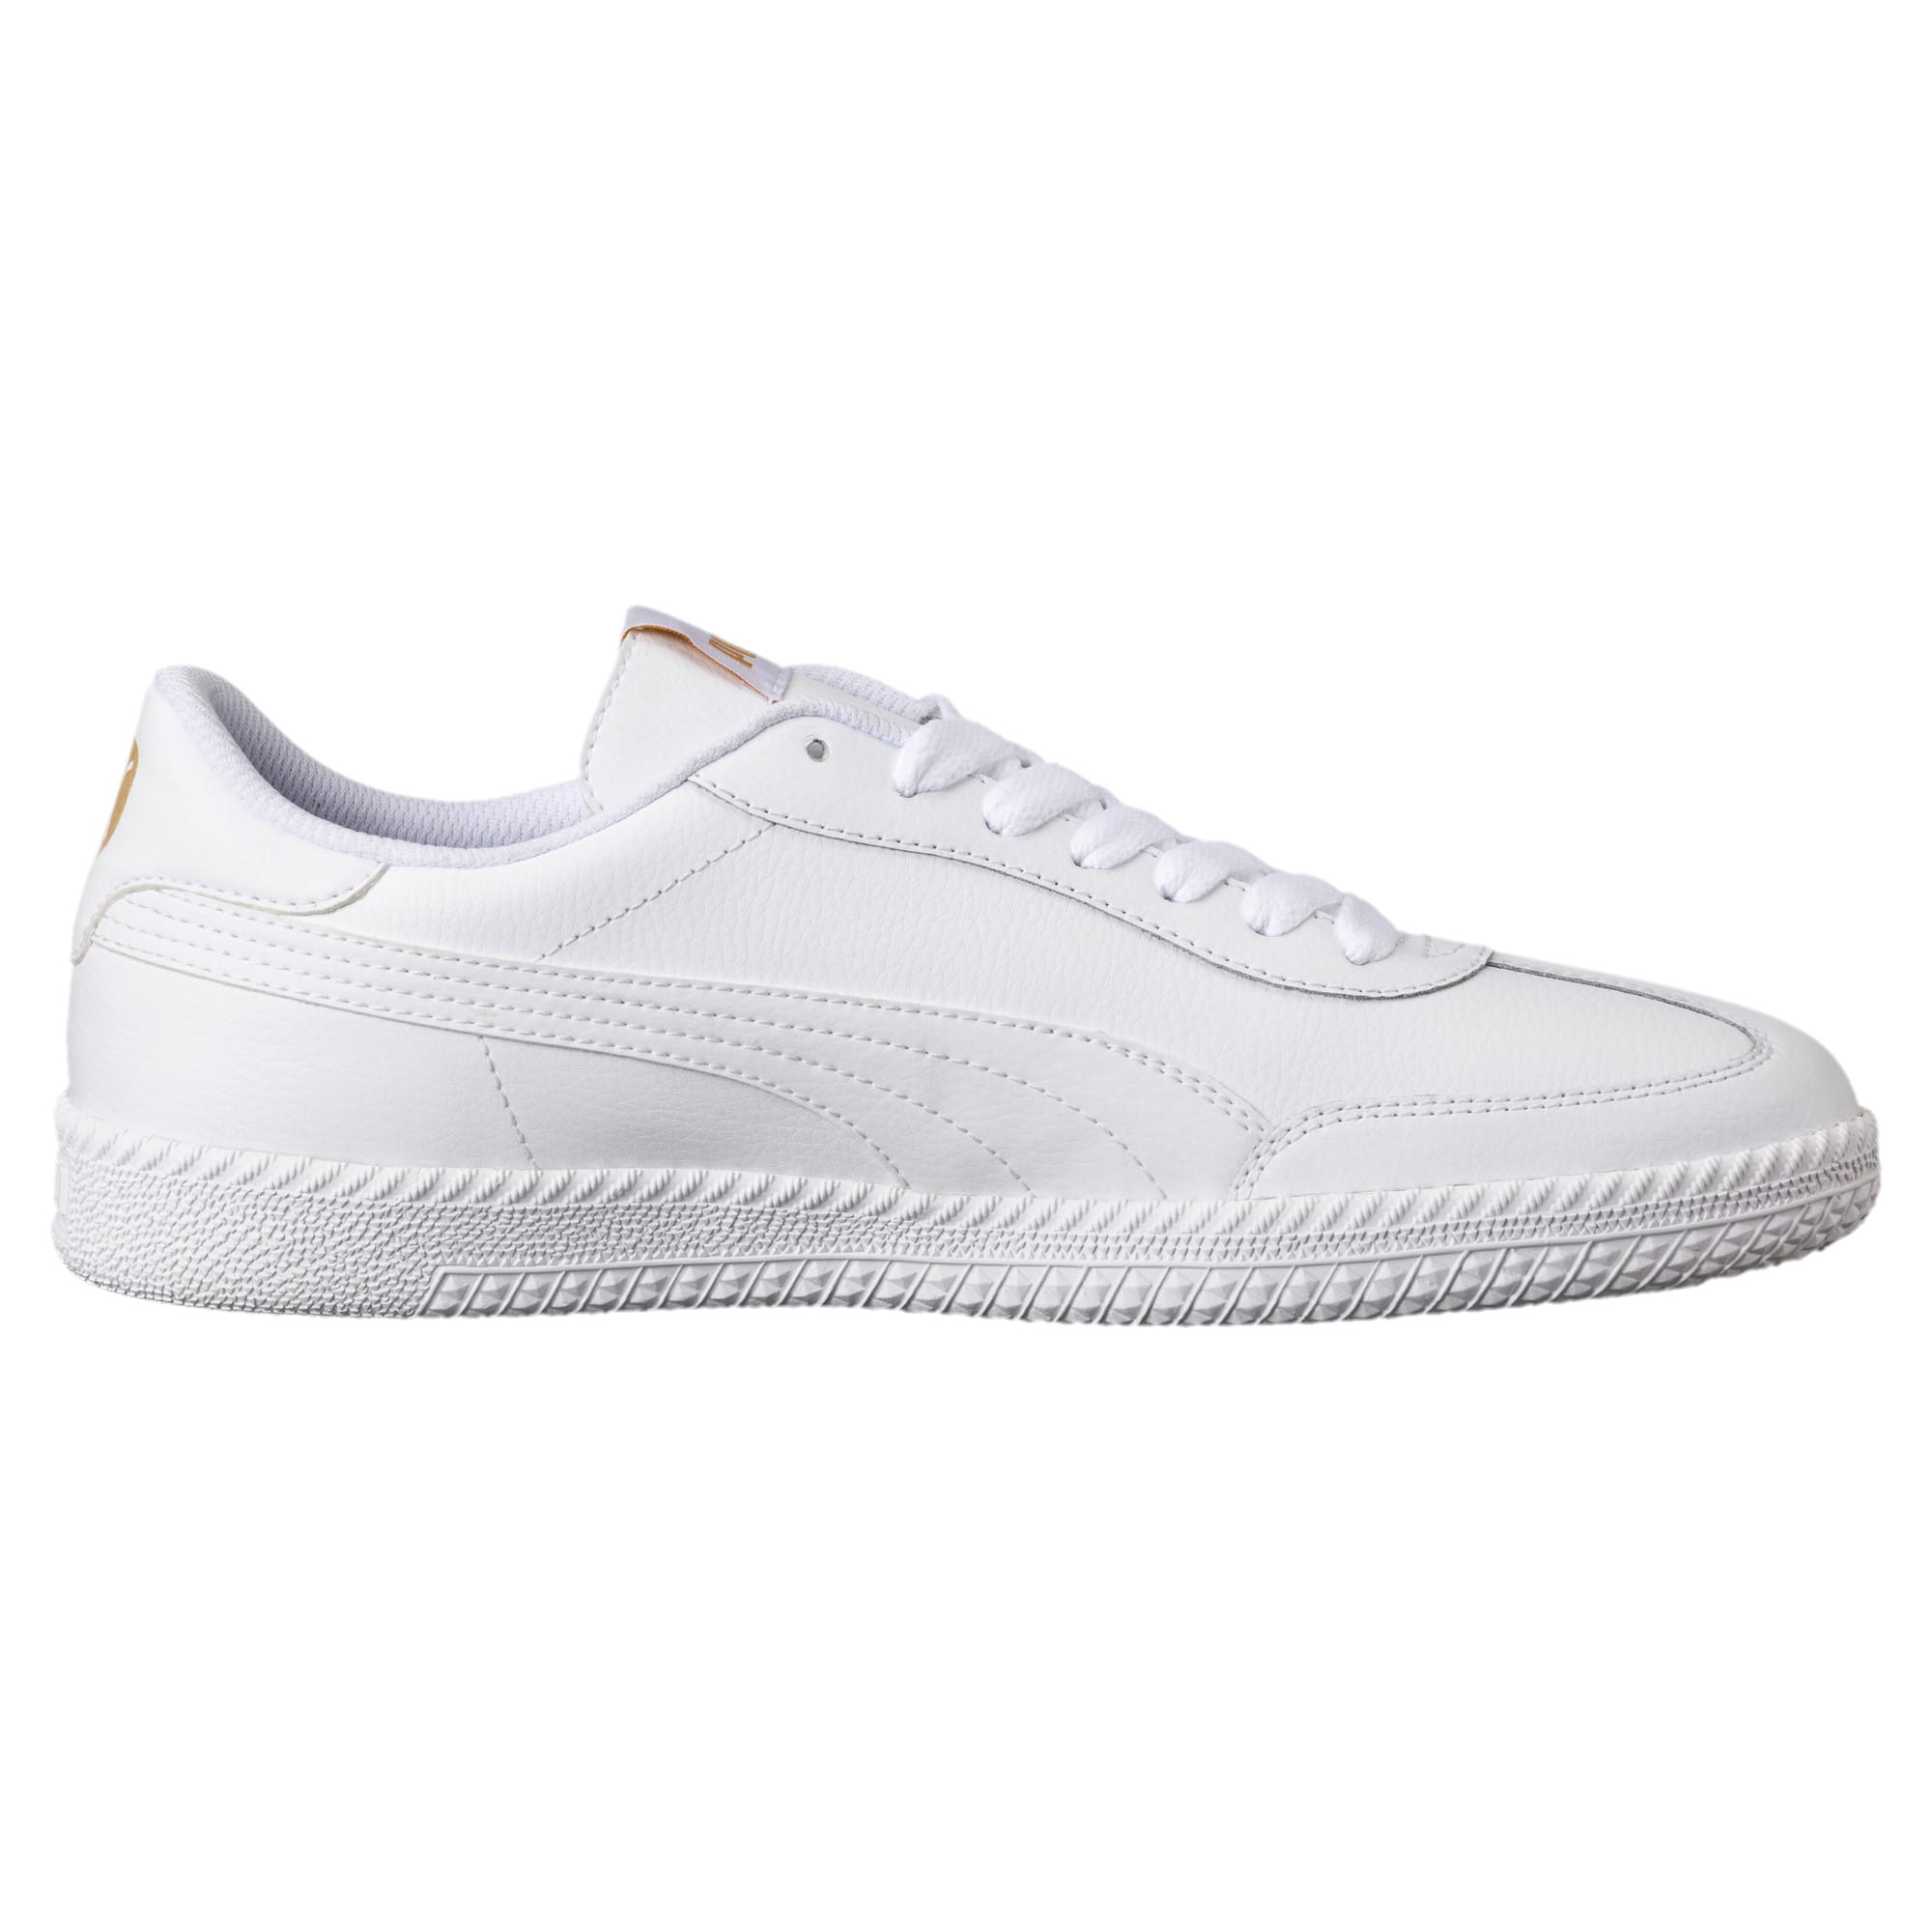 Thumbnail 4 of Astro Cup Leather Trainers, Puma White-Puma White, medium-IND